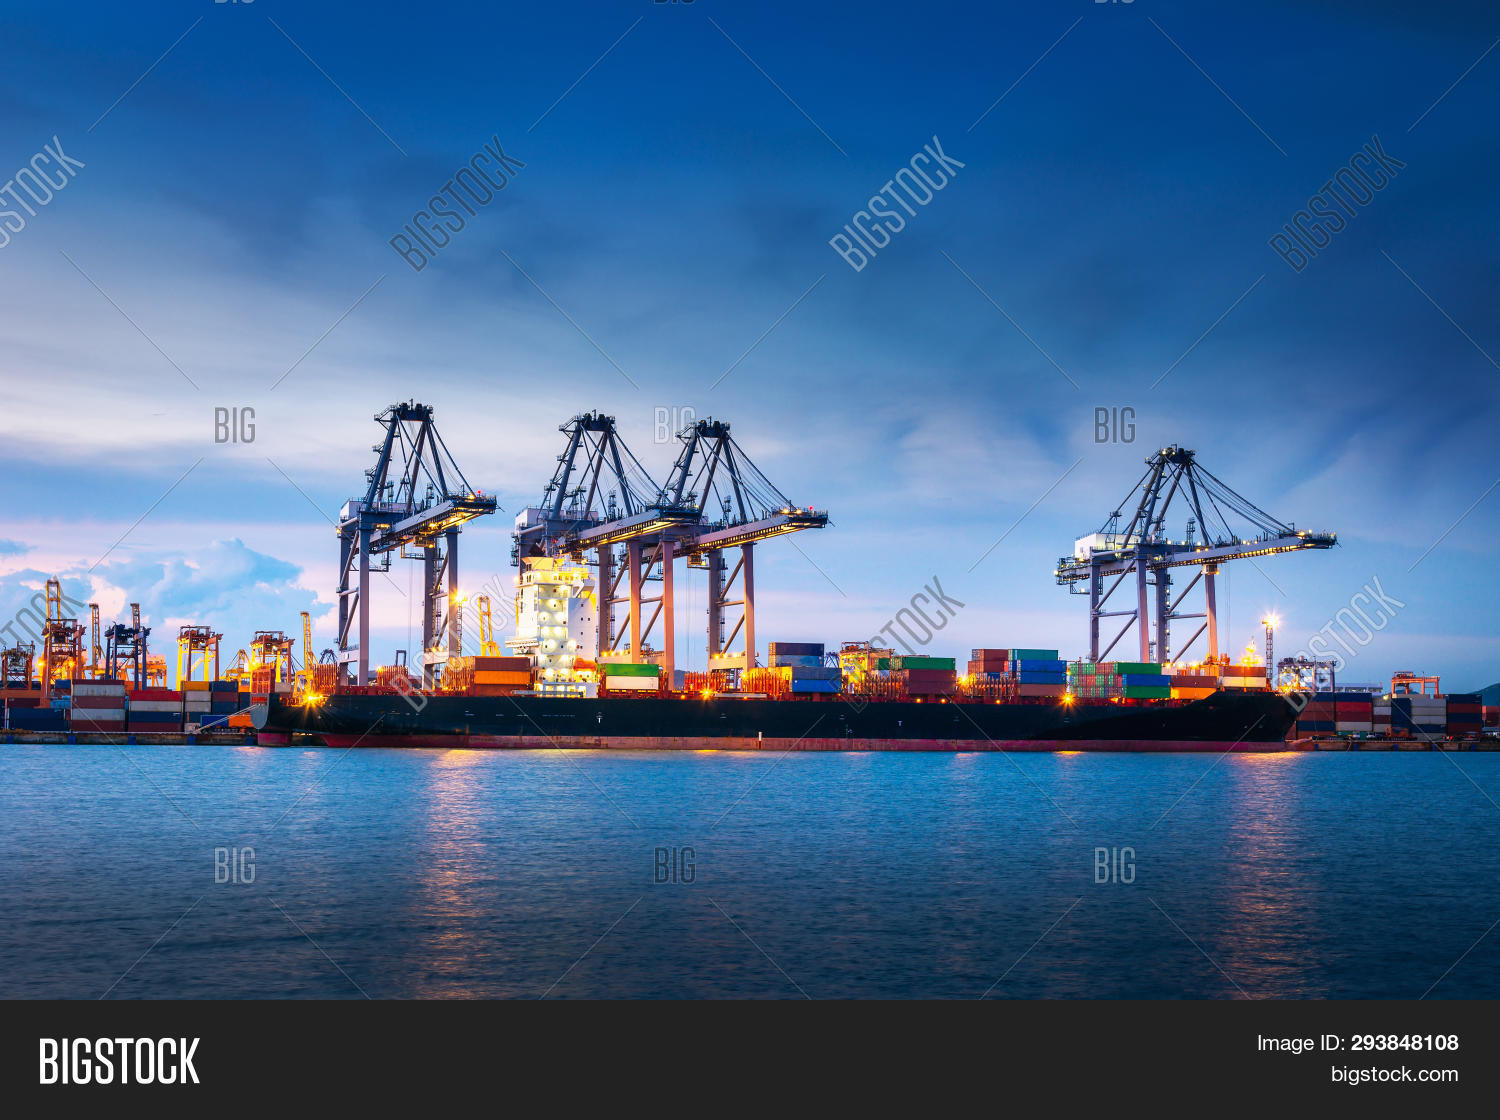 blue,boat,business,cargo,carrier,commerce,commercial,container,crane,delivery,dock,economy,equipment,export,freight,freighter,global,goods,growth,harbor,heavy,import,industrial,industry,international,investment,loading,logistics,machine,marine,maritime,nautical,network,pier,port,sea,ship,shipment,shipping,shipyard,singapore,sky,terminal,trade,transfer,transport,transportation,unloading,vessel,water